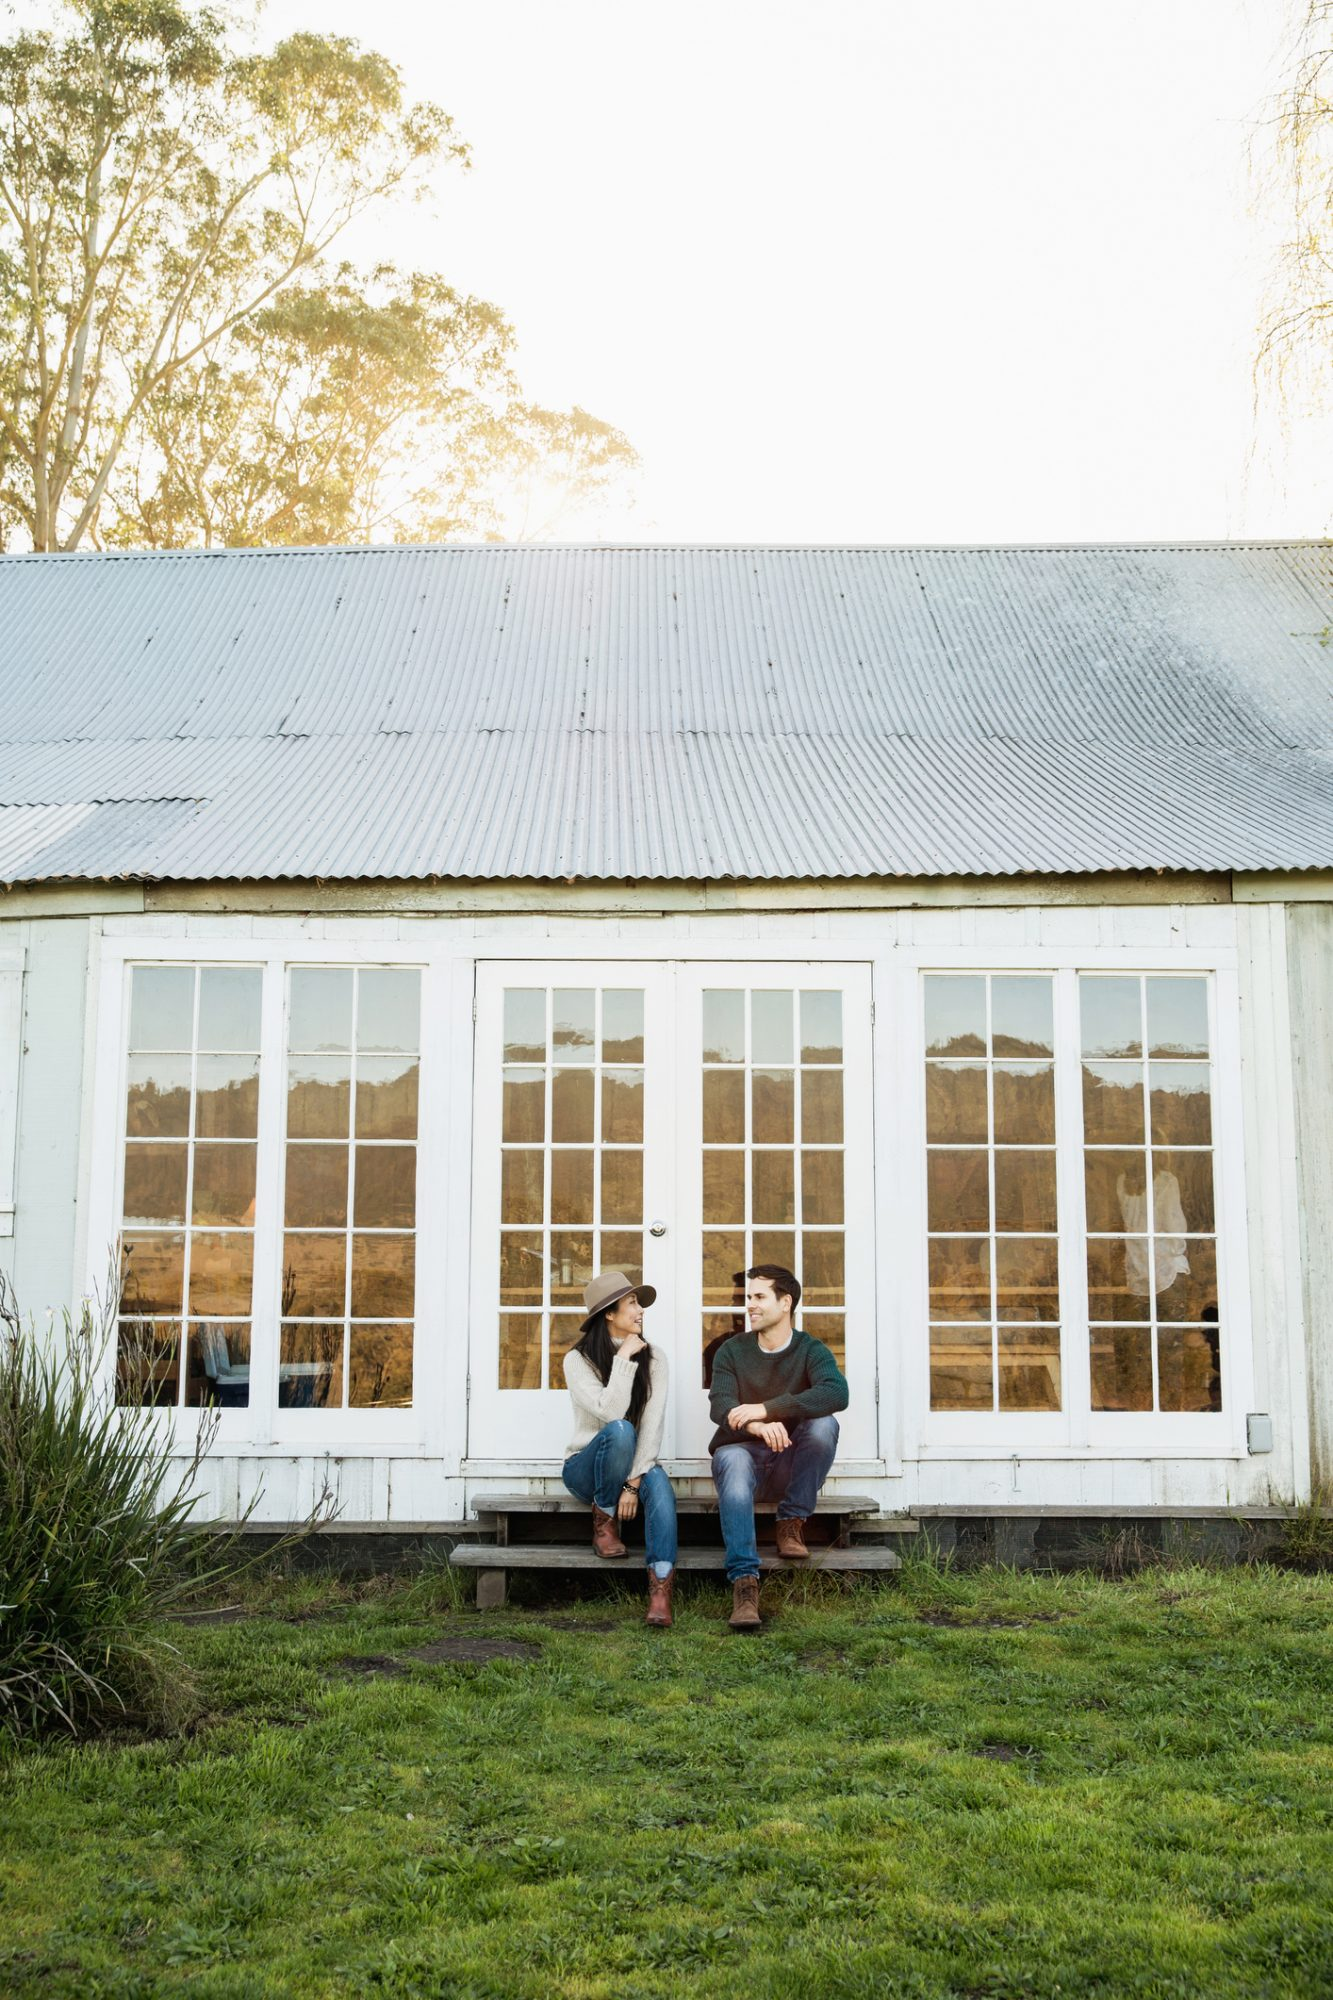 Couple sitting on the porch of their country house